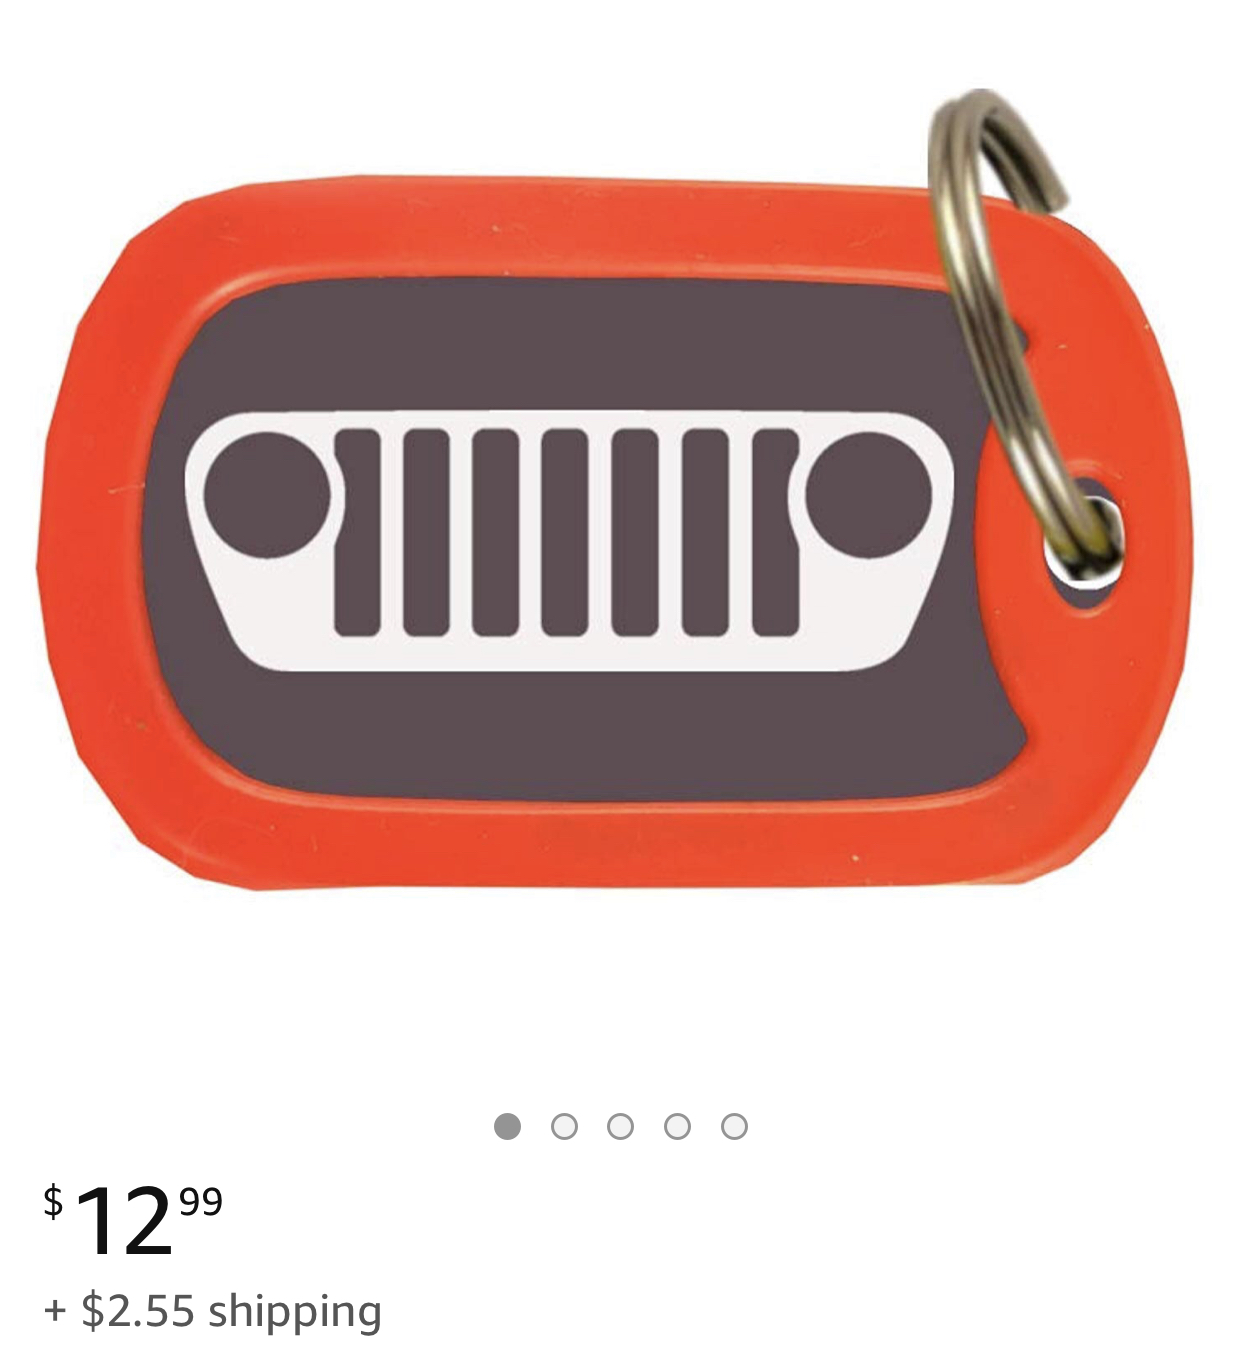 Jeep Wrangler Red Aluminum Oval Key Chain